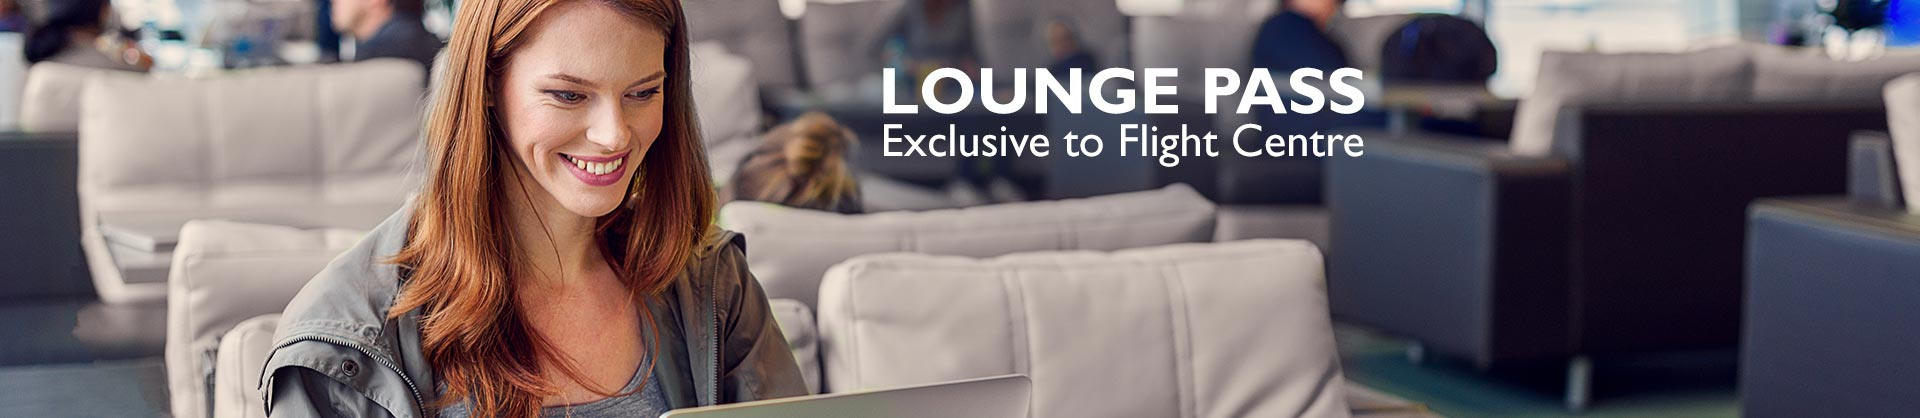 Flight Centre Lounge Pass